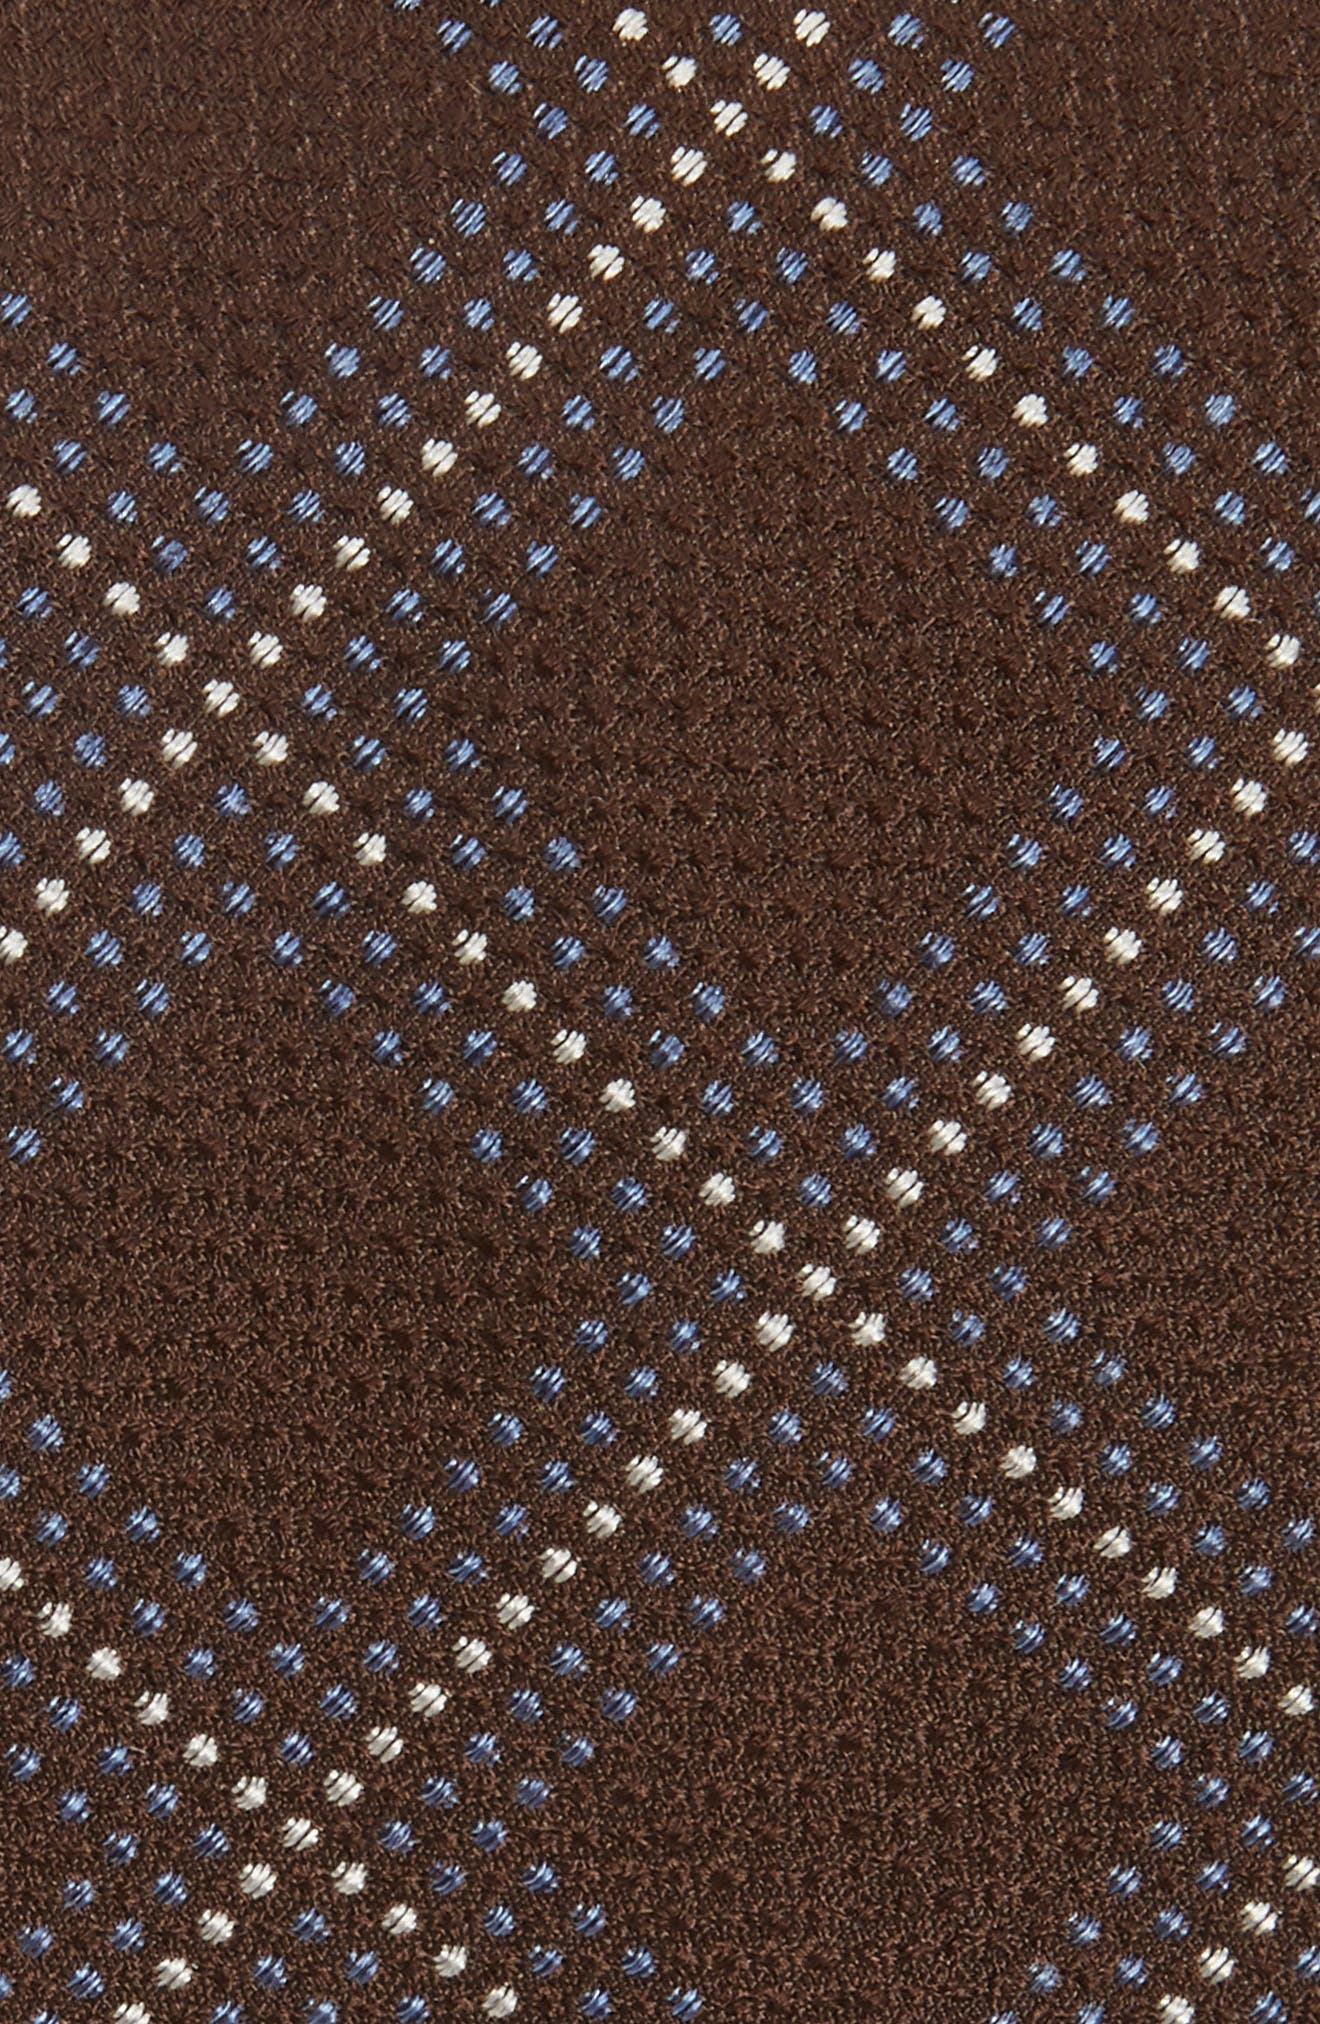 Grid Silk Blend Tie,                             Alternate thumbnail 2, color,                             200